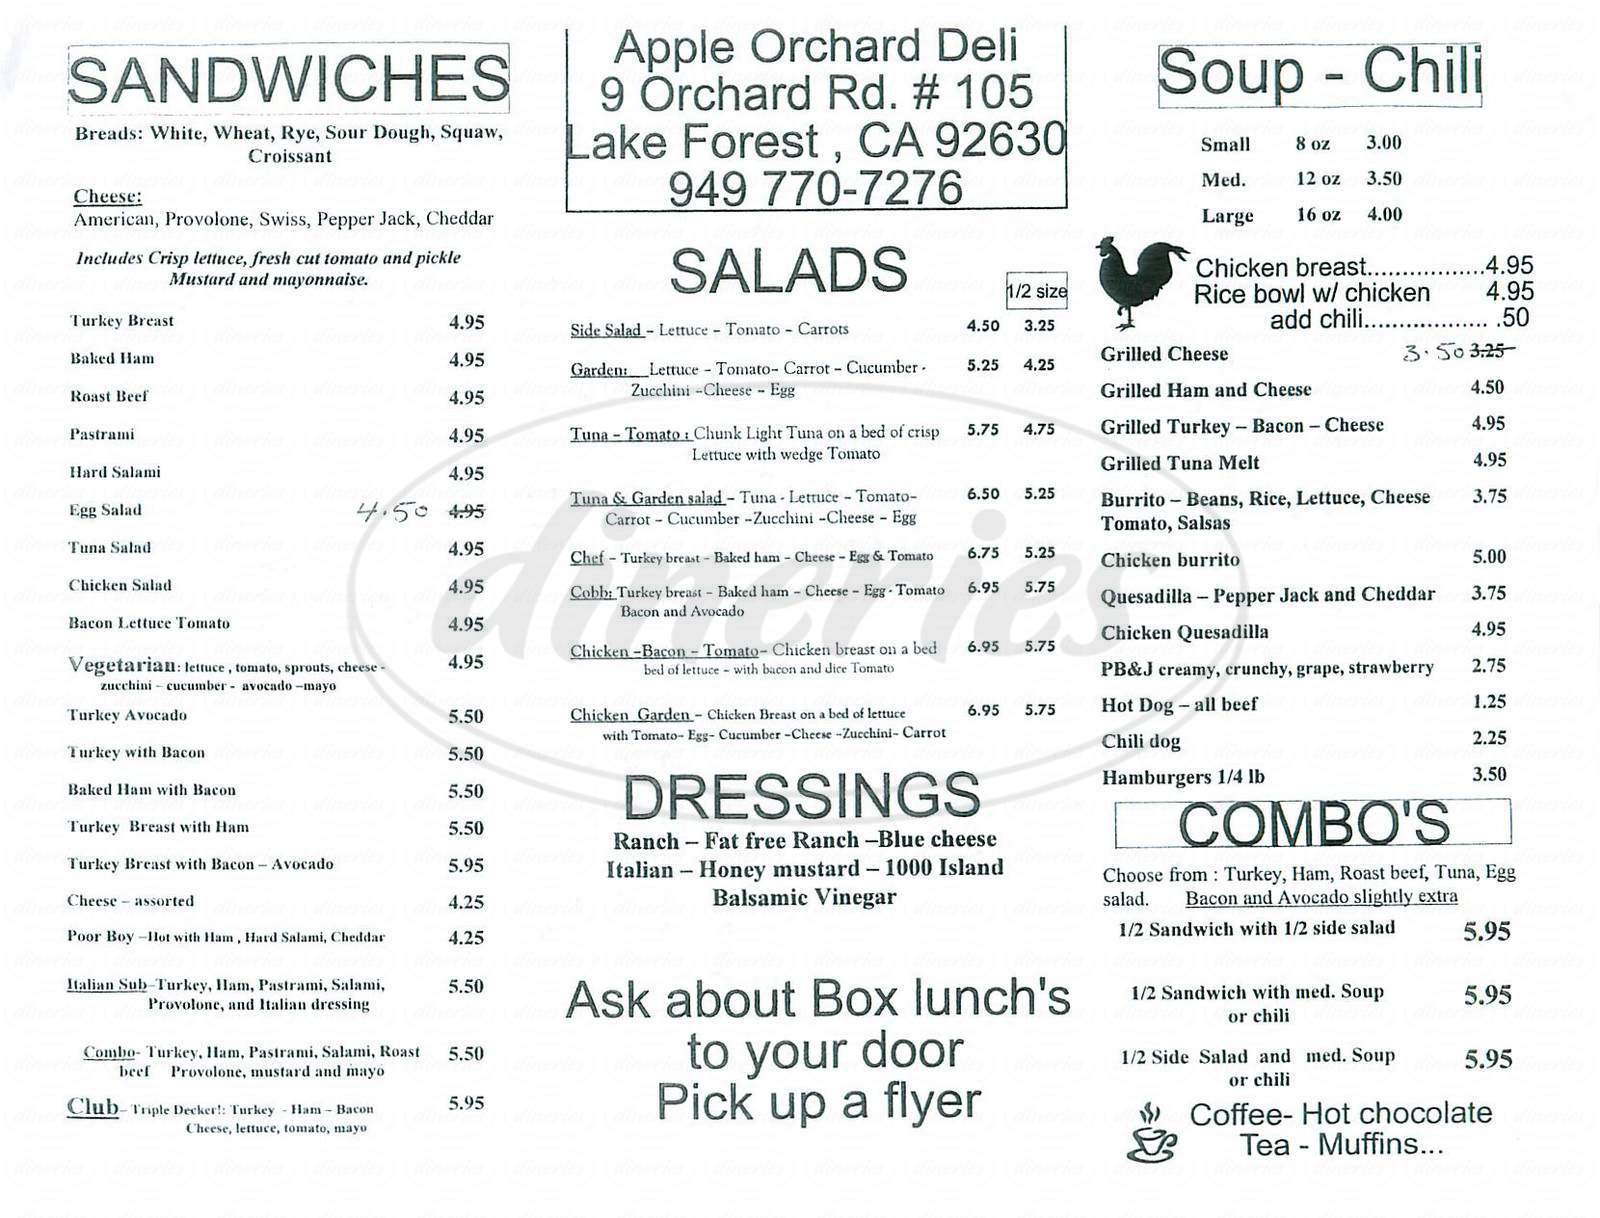 menu for Apple Orchard Deli